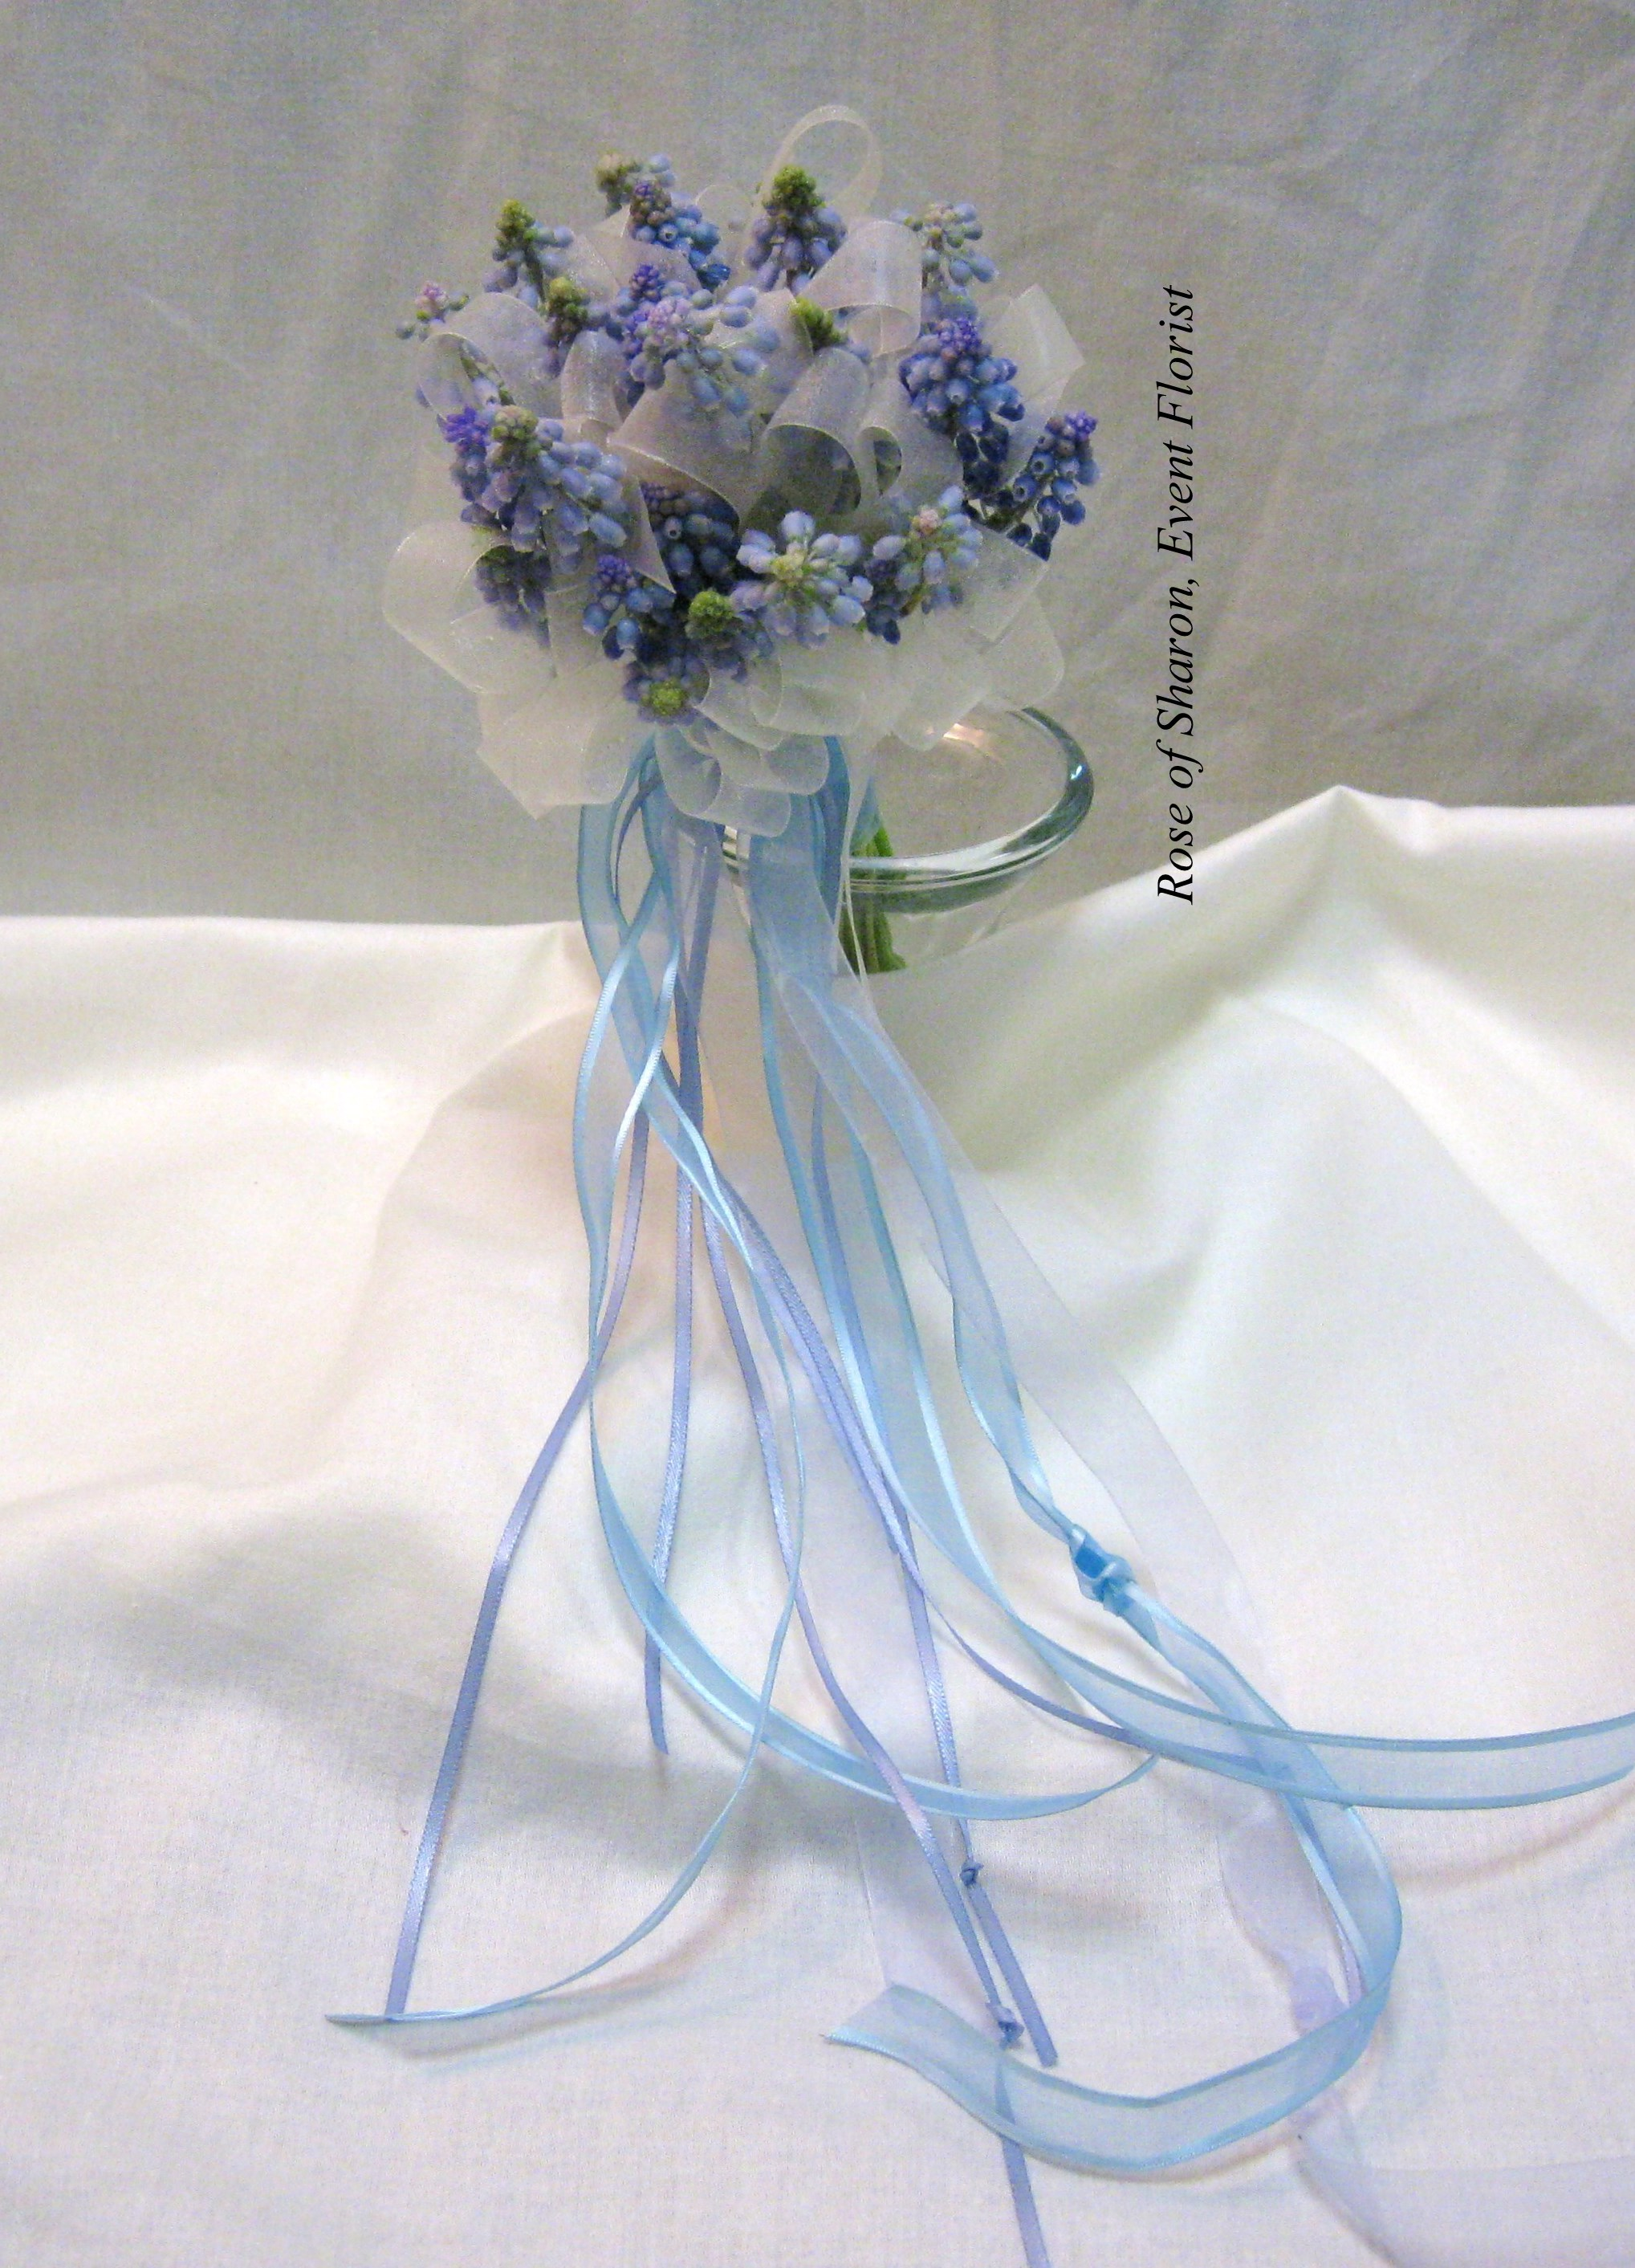 Blue Hand-Tied Grape Hyacinth Bouquet with Ribbon Accents. Rose of Sharon Floral Designs